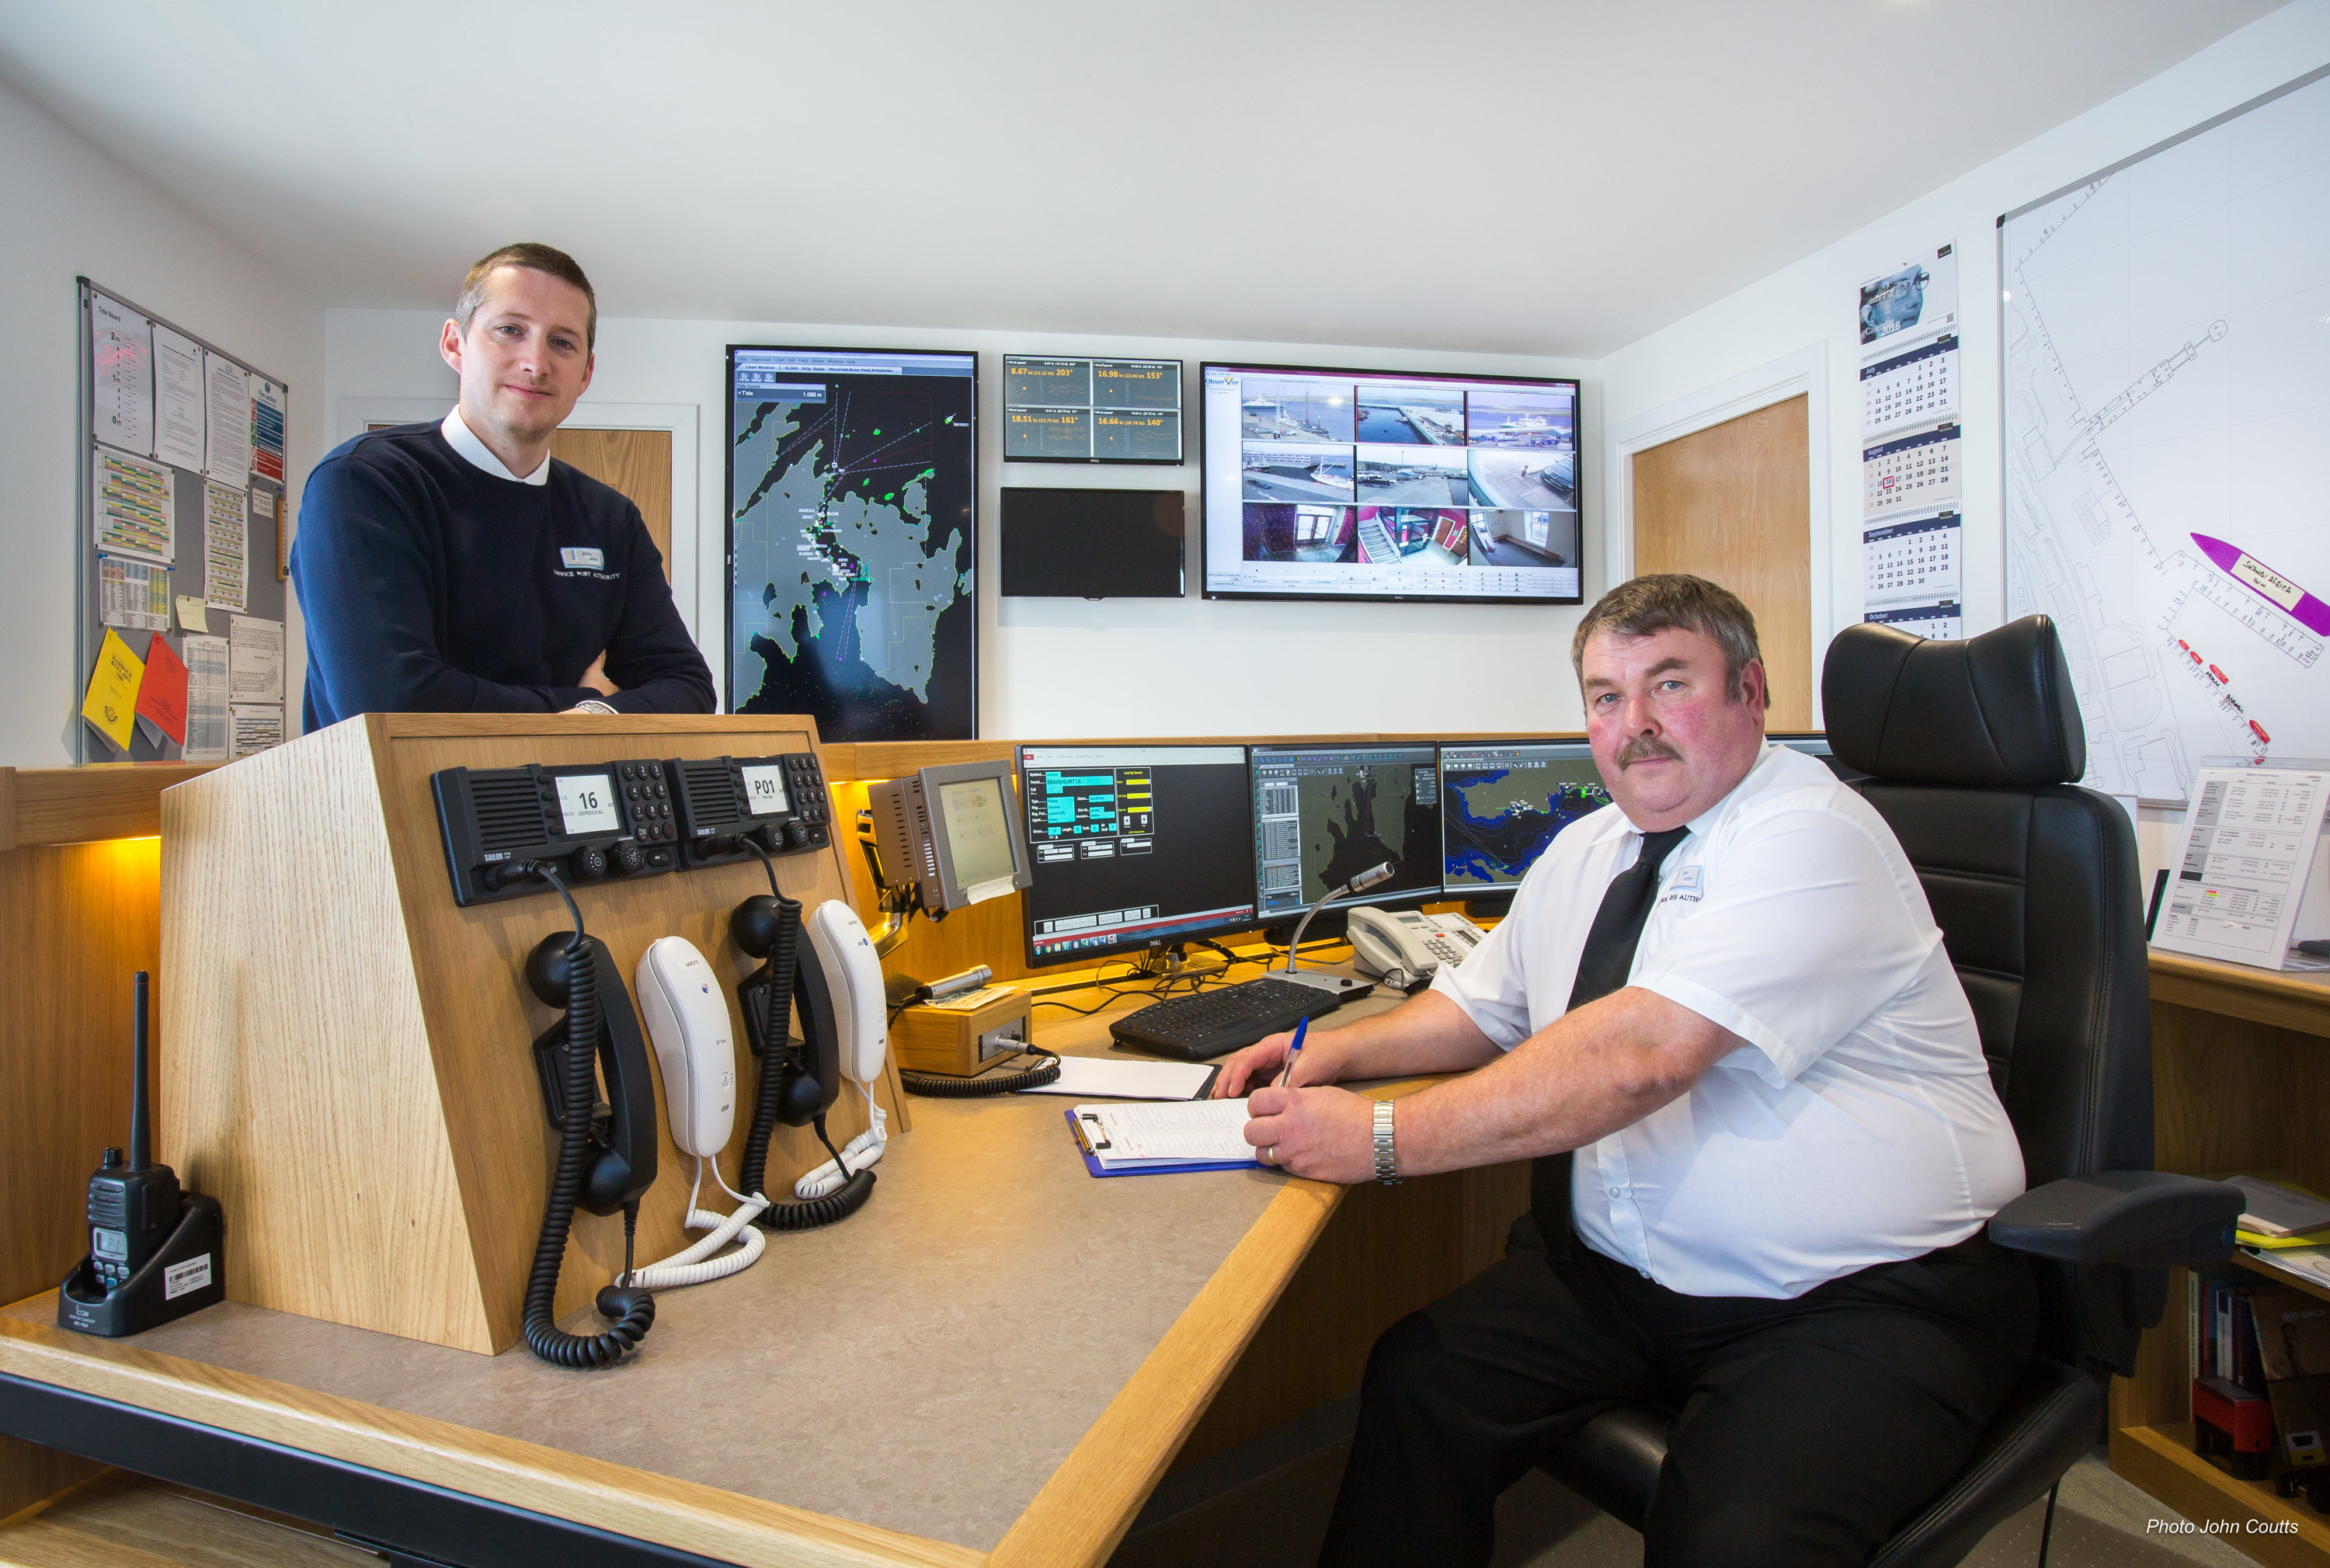 Lerwick Harbour's port control room and the newly installed Vessel Monitoring System, with Deputy Harbourmaster Alexander Simpson (left) and Port Controller Douglas Garrick. Photo courtesy of John Coutts.